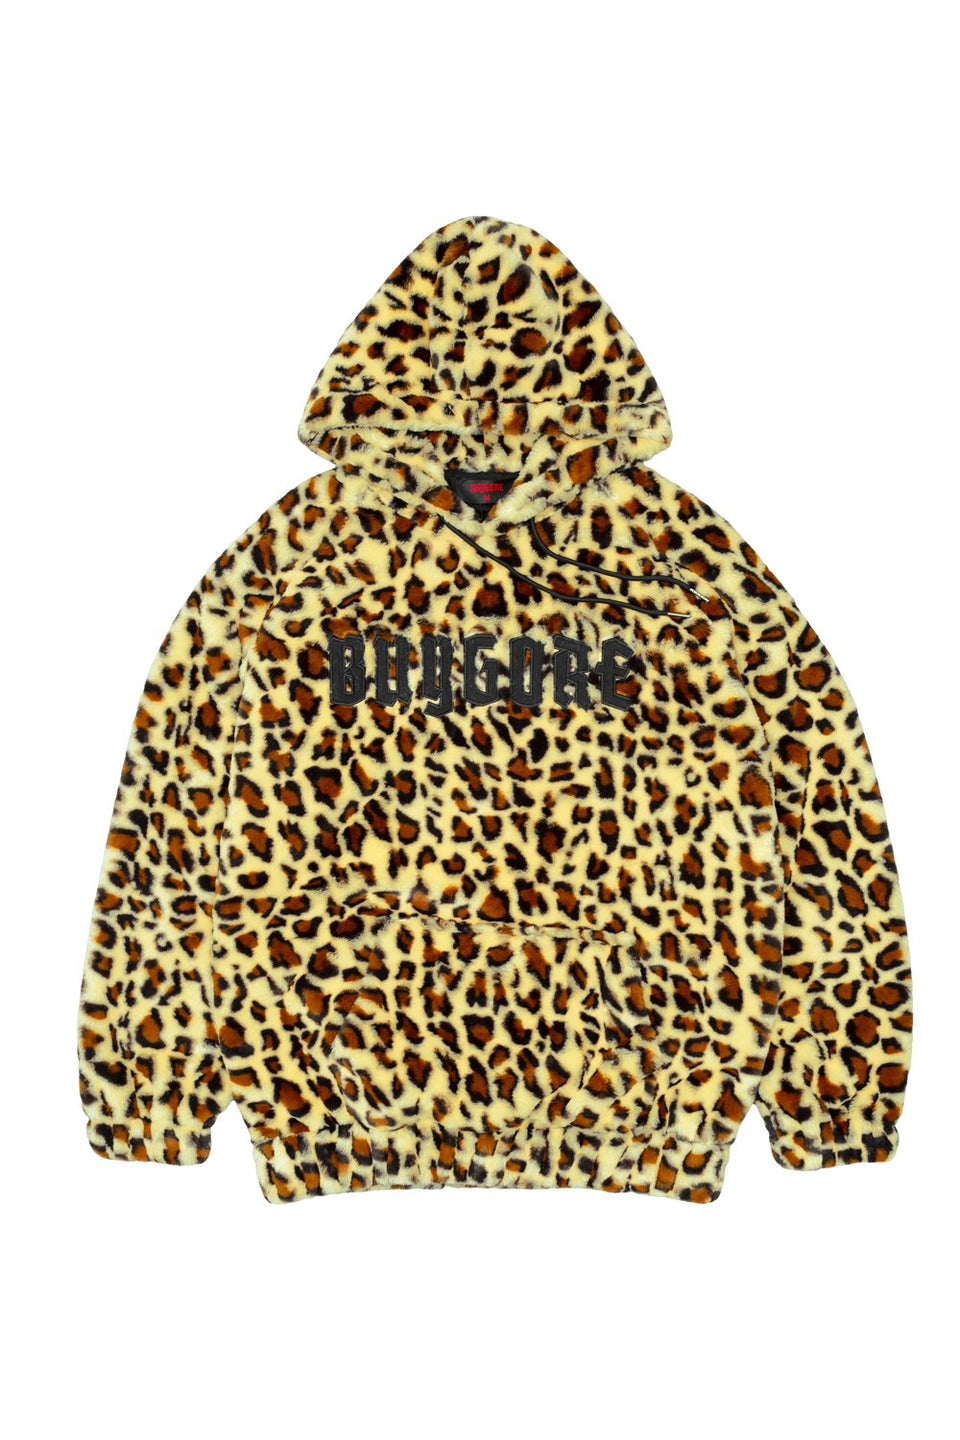 Buygore - Fuzzy - Leopard Hoodie